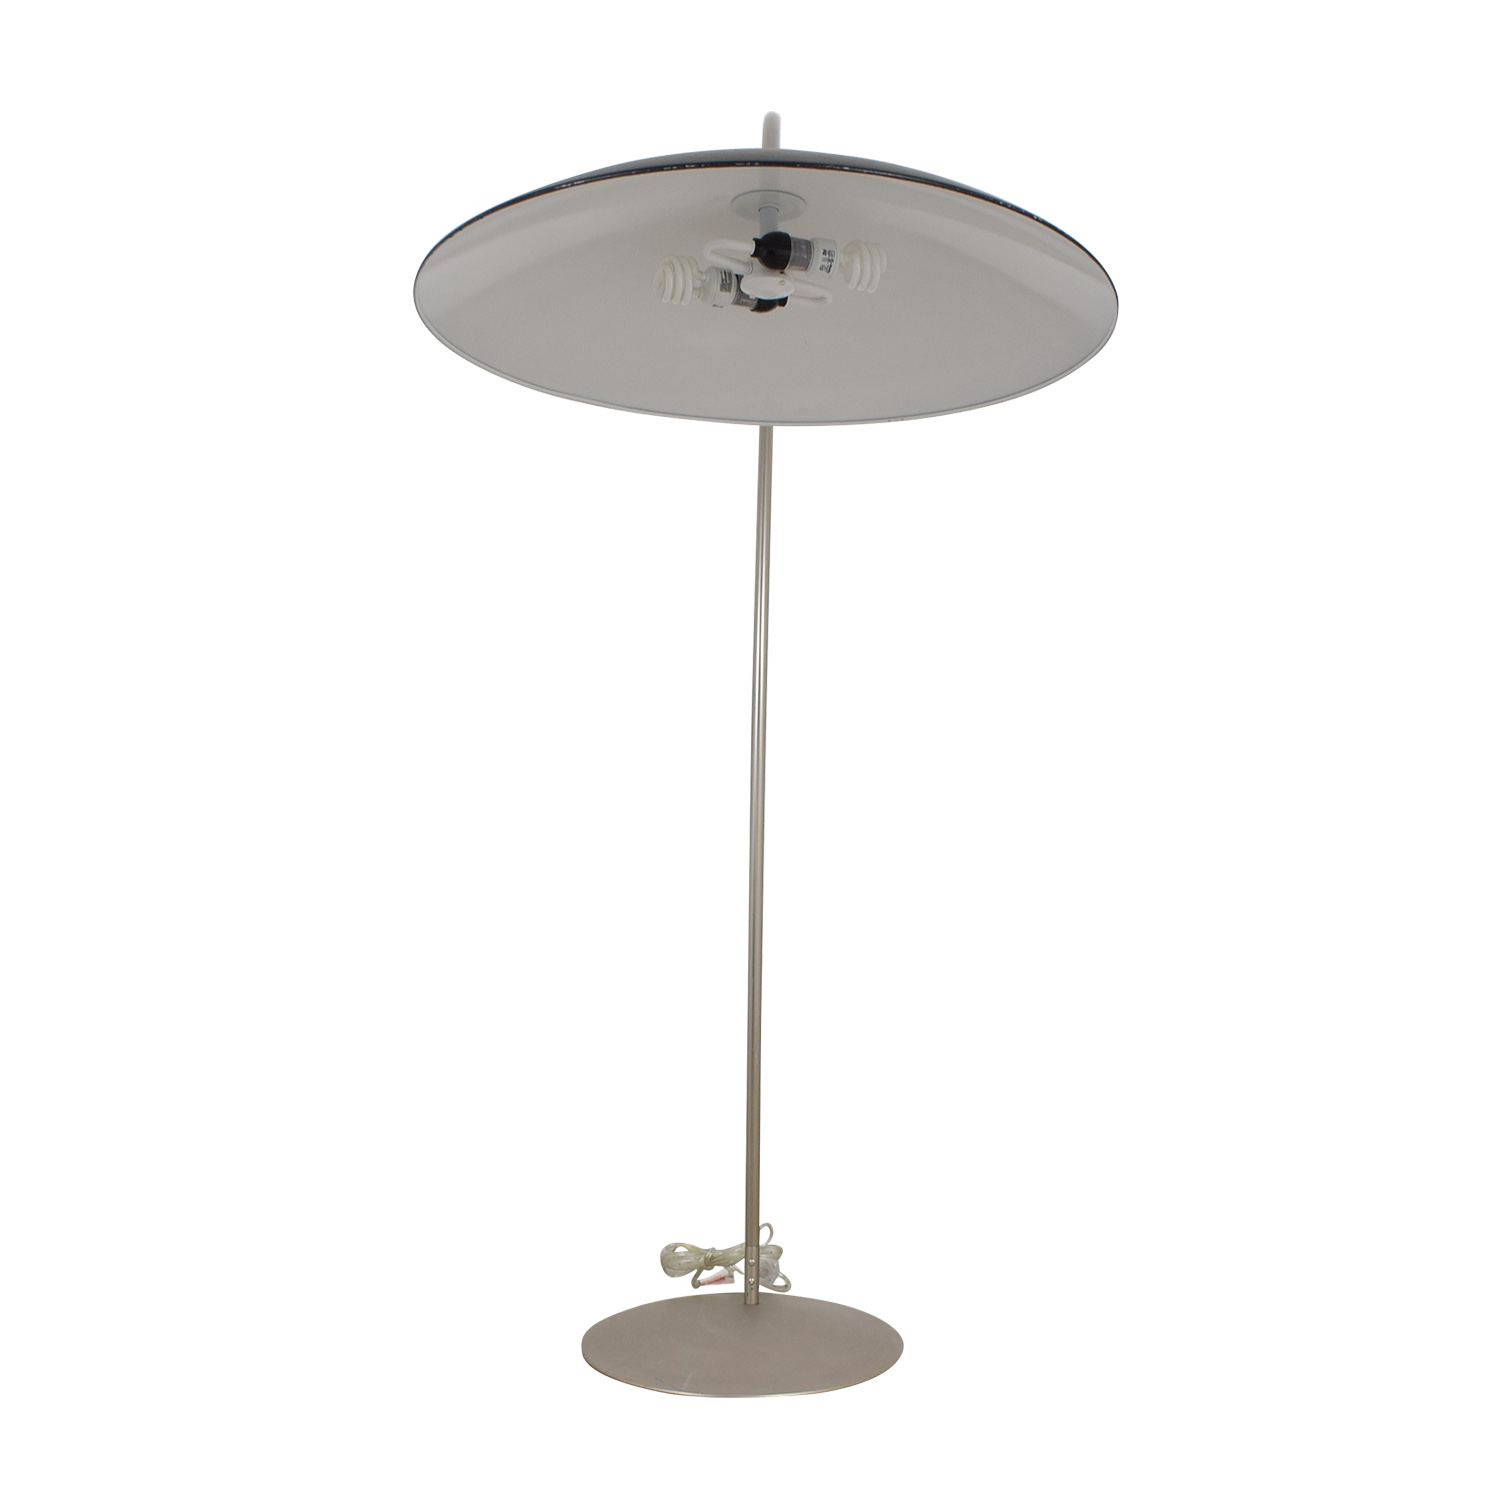 CB2 CB2 Atomic Floor Lamp Lamps